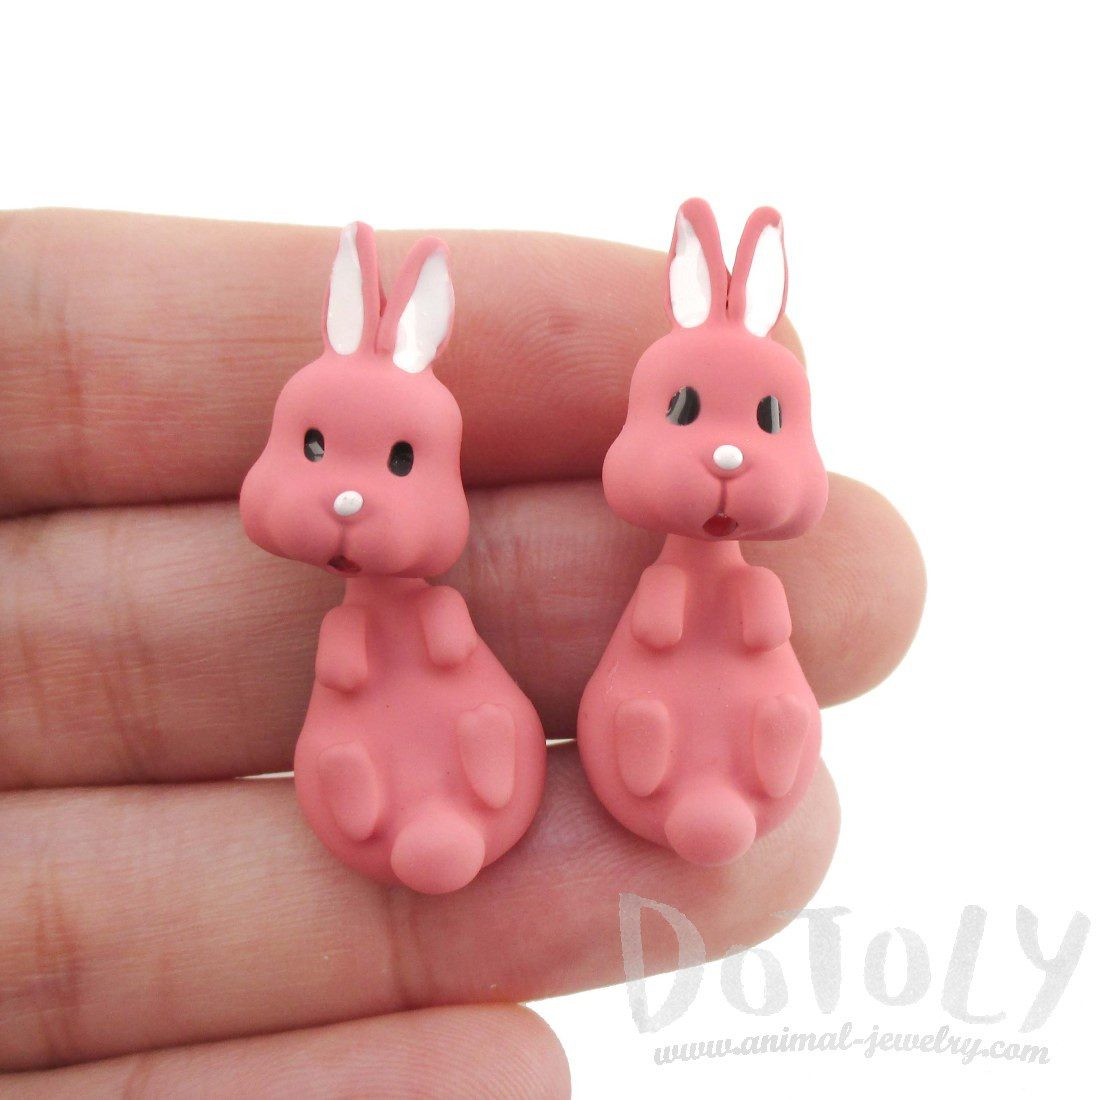 3D Bunny Rabbit Shaped Two Part Stud Earrings in Pink